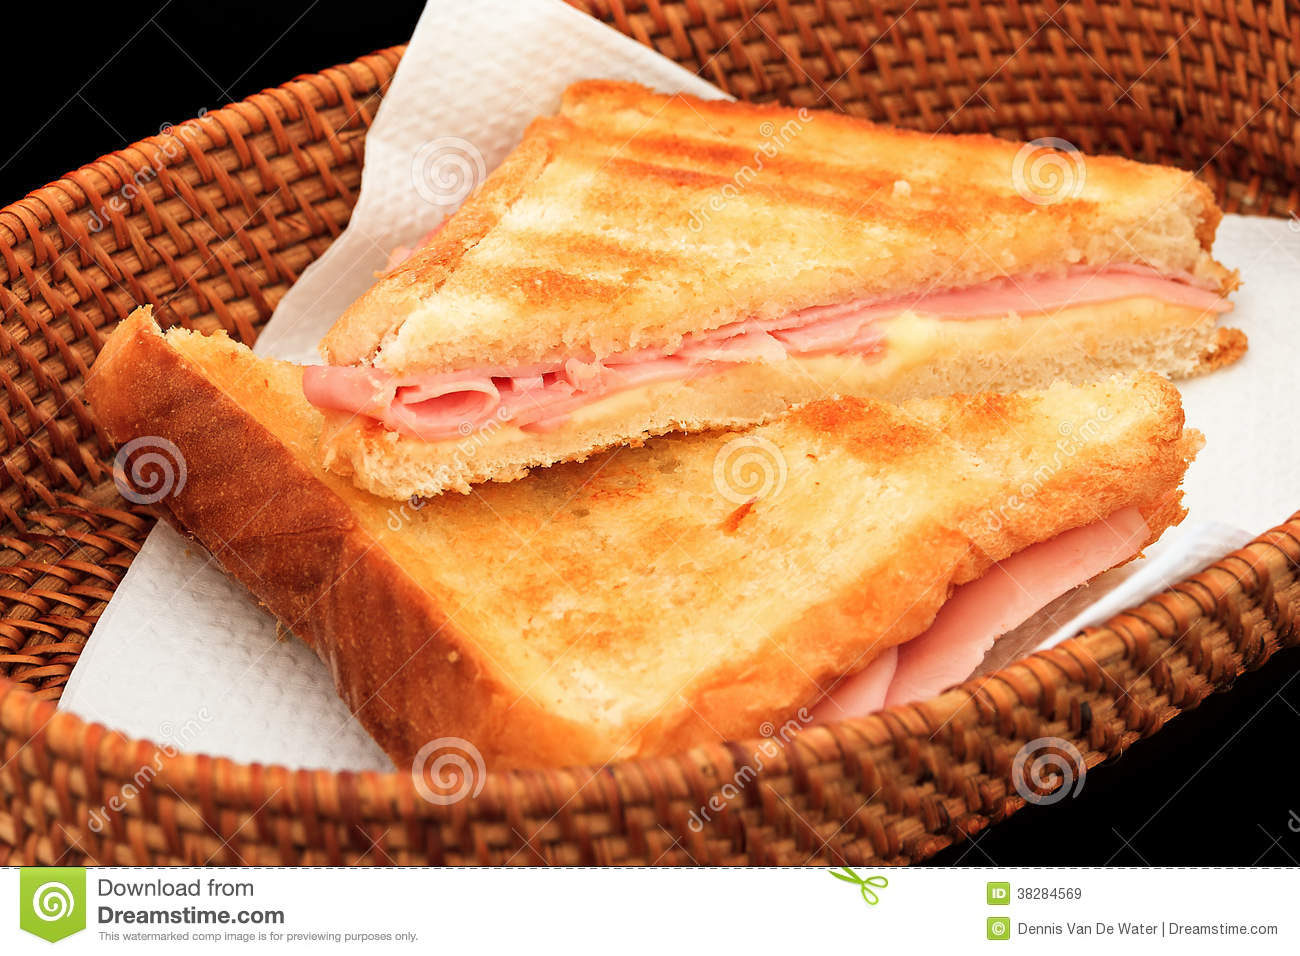 grilled ham and cheese sandwich royalty free stock images Cartoon Sub Sandwich Meatball Sub Sandwich Clip Art